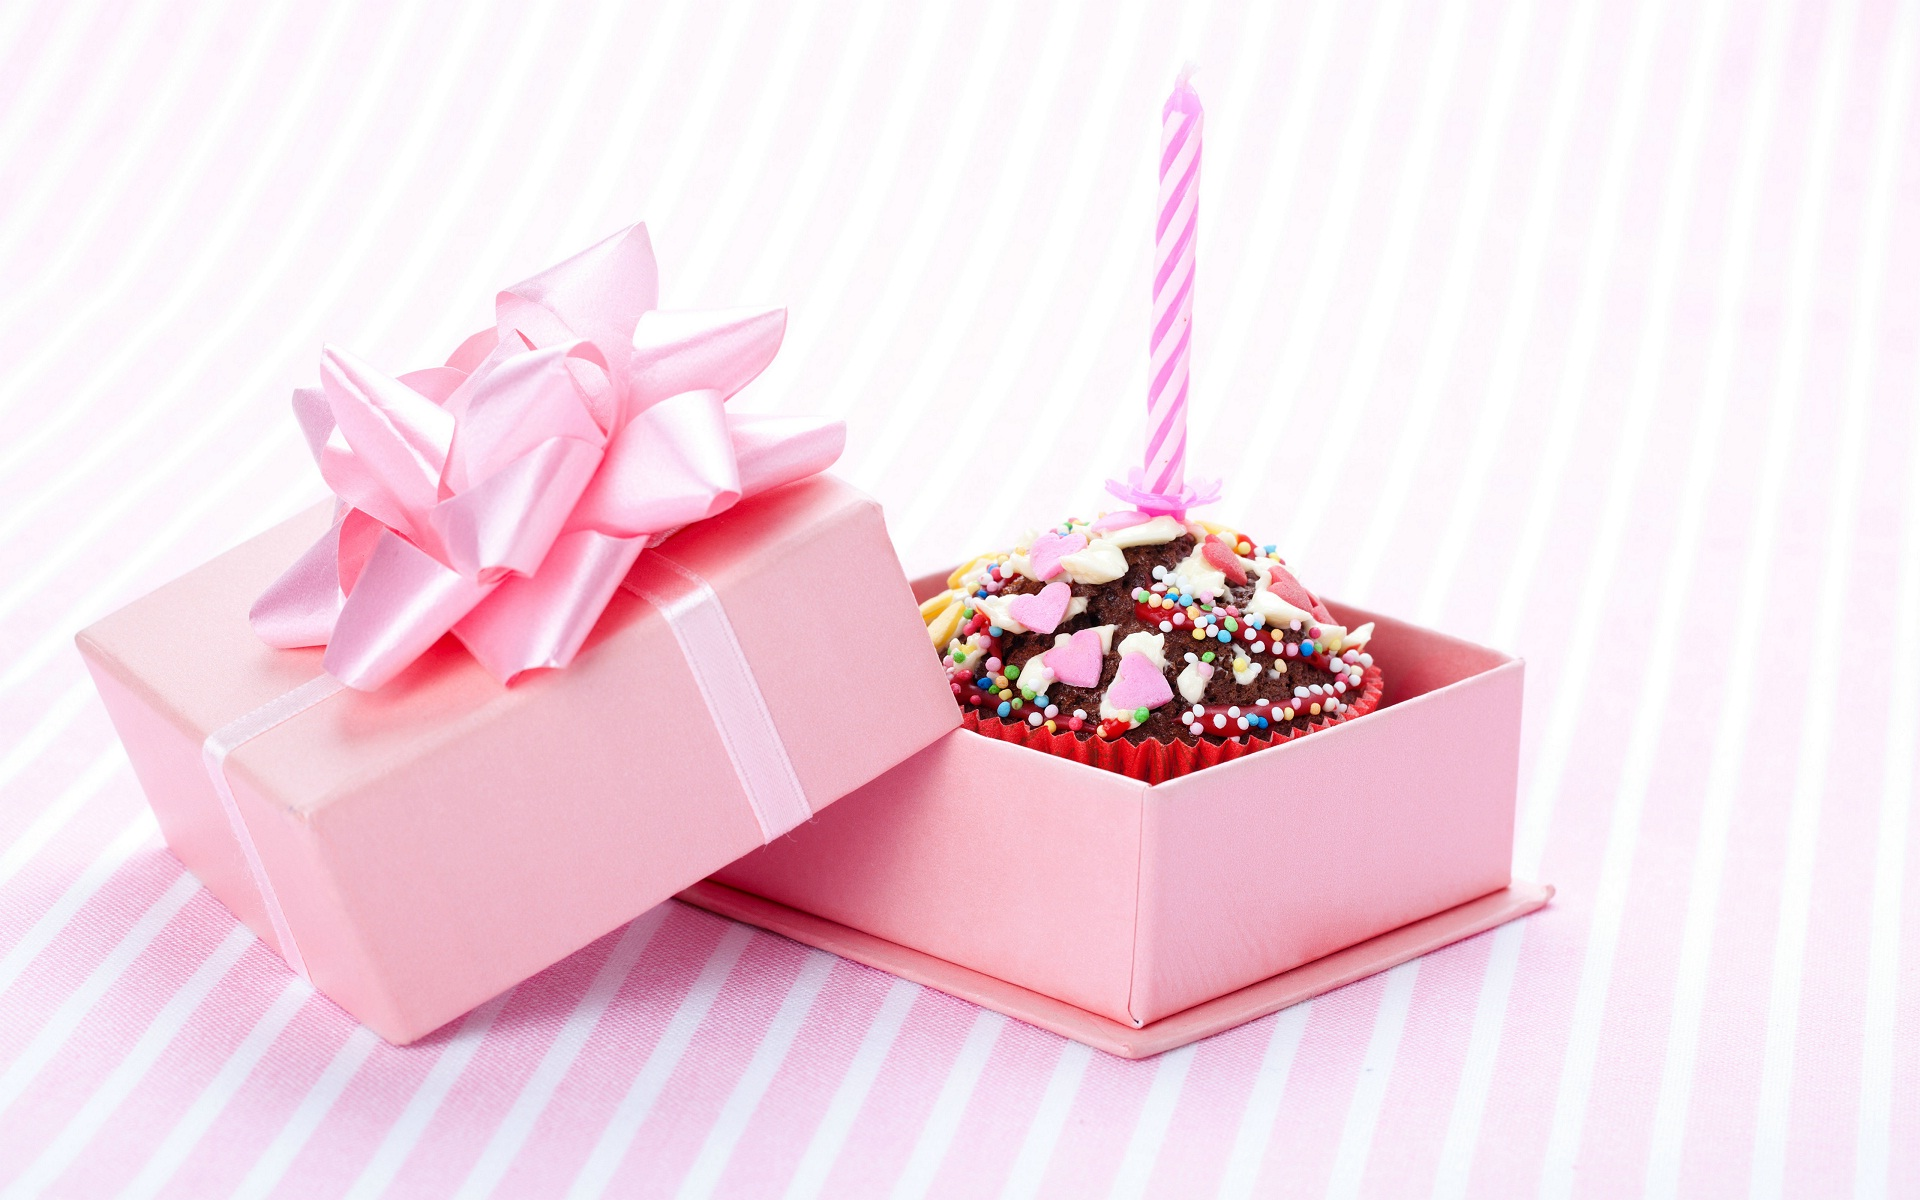 hd wallpaper happy birthday gifts ; 9e8212d03d9ef529558de2c215b0472d